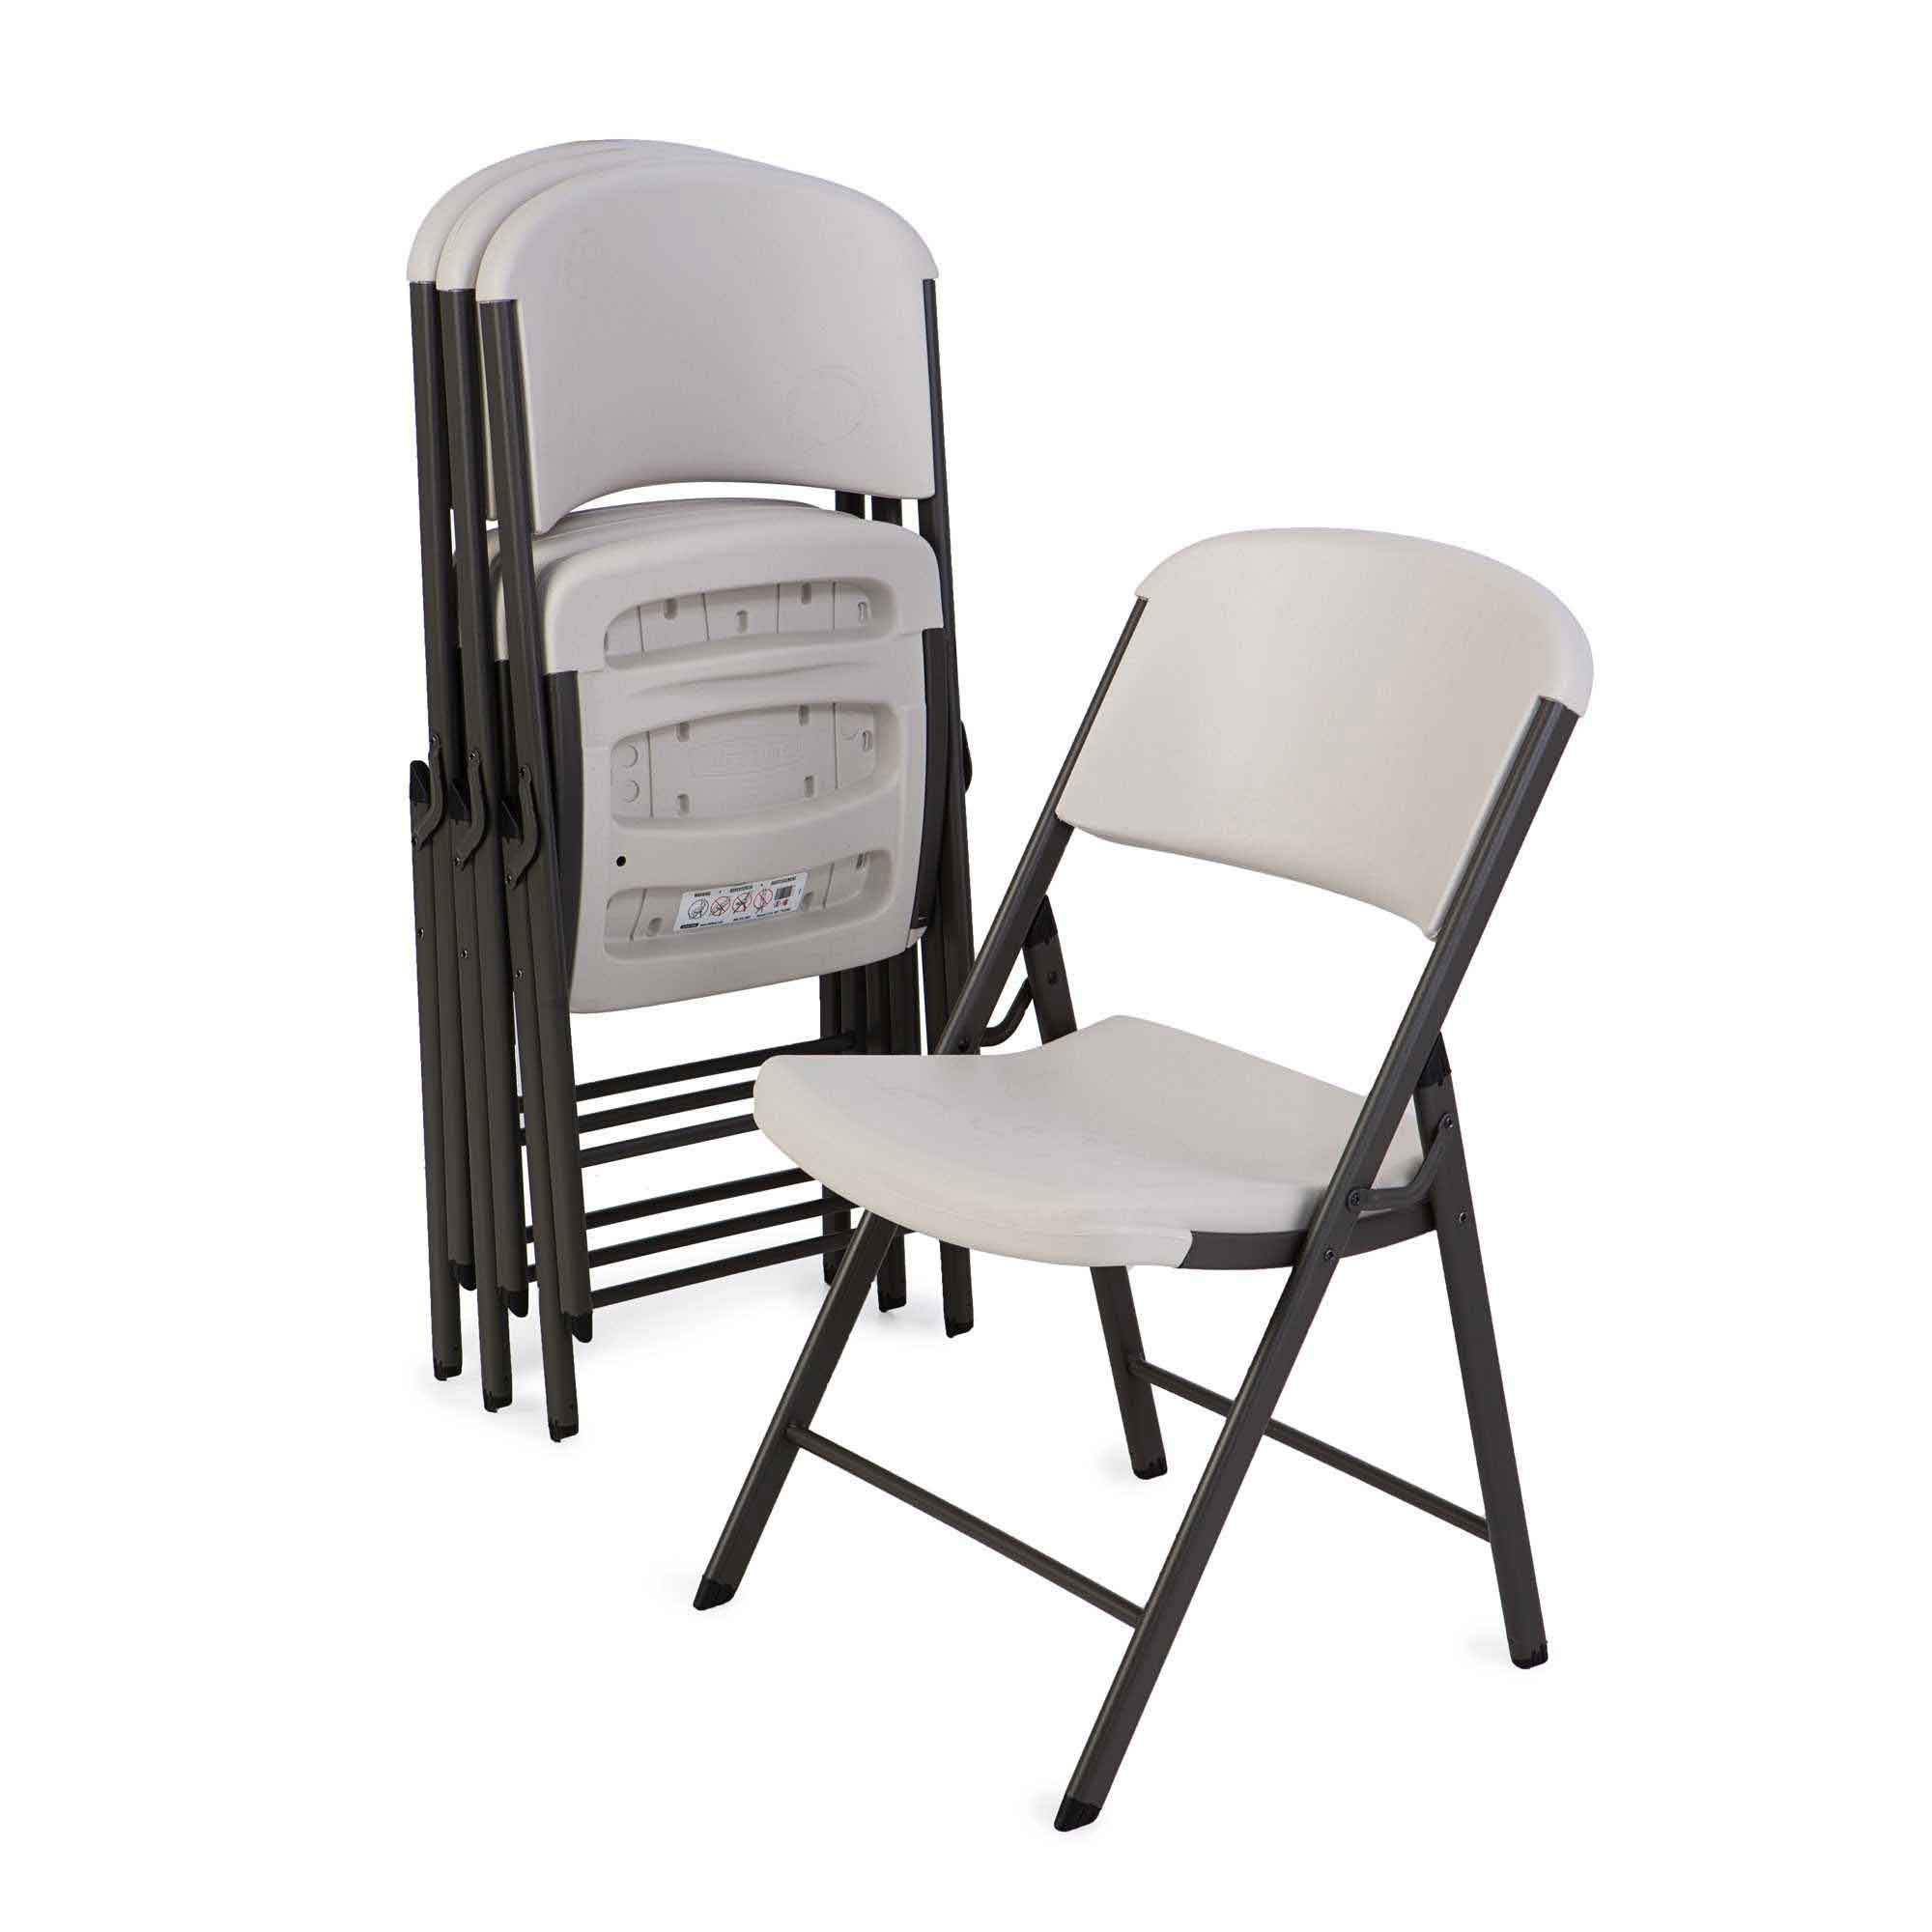 Lifetime 42803 Almond Folding Chair On Sale With Fast